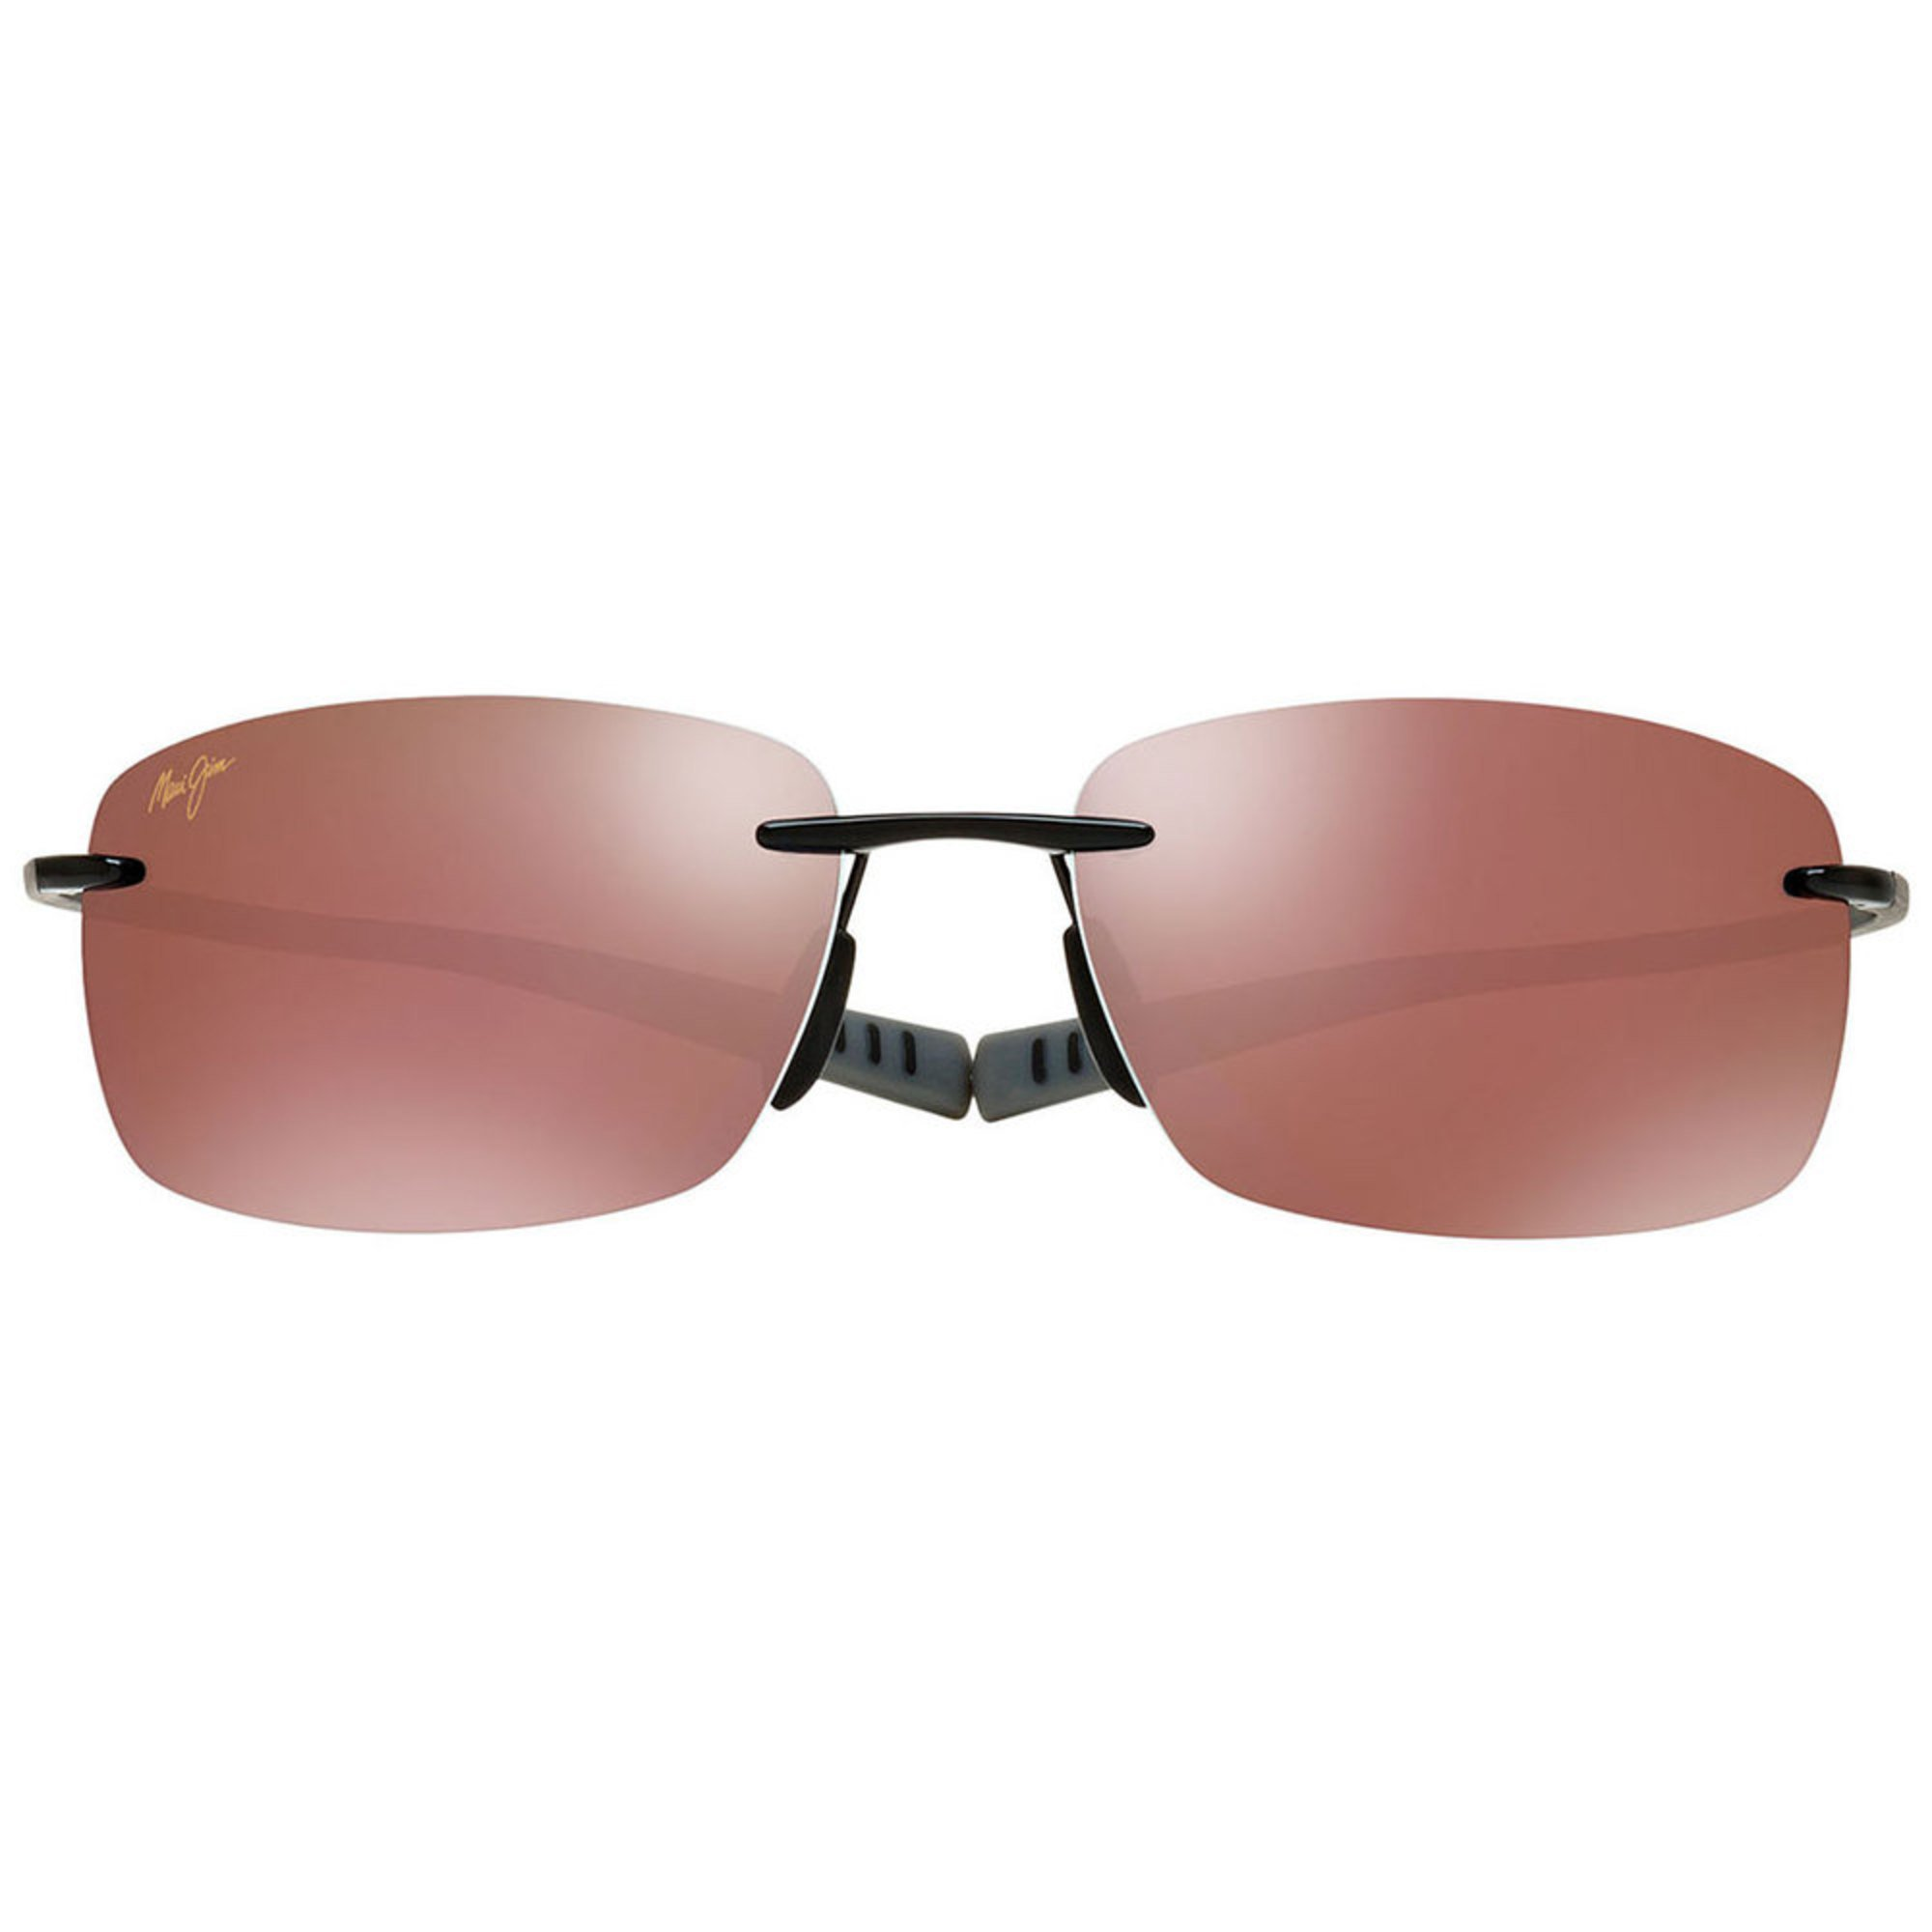 e9399a47e4c2 Maui Jim Unisex Kumu Gloss Black Polarized Rimless Sunglasses ...